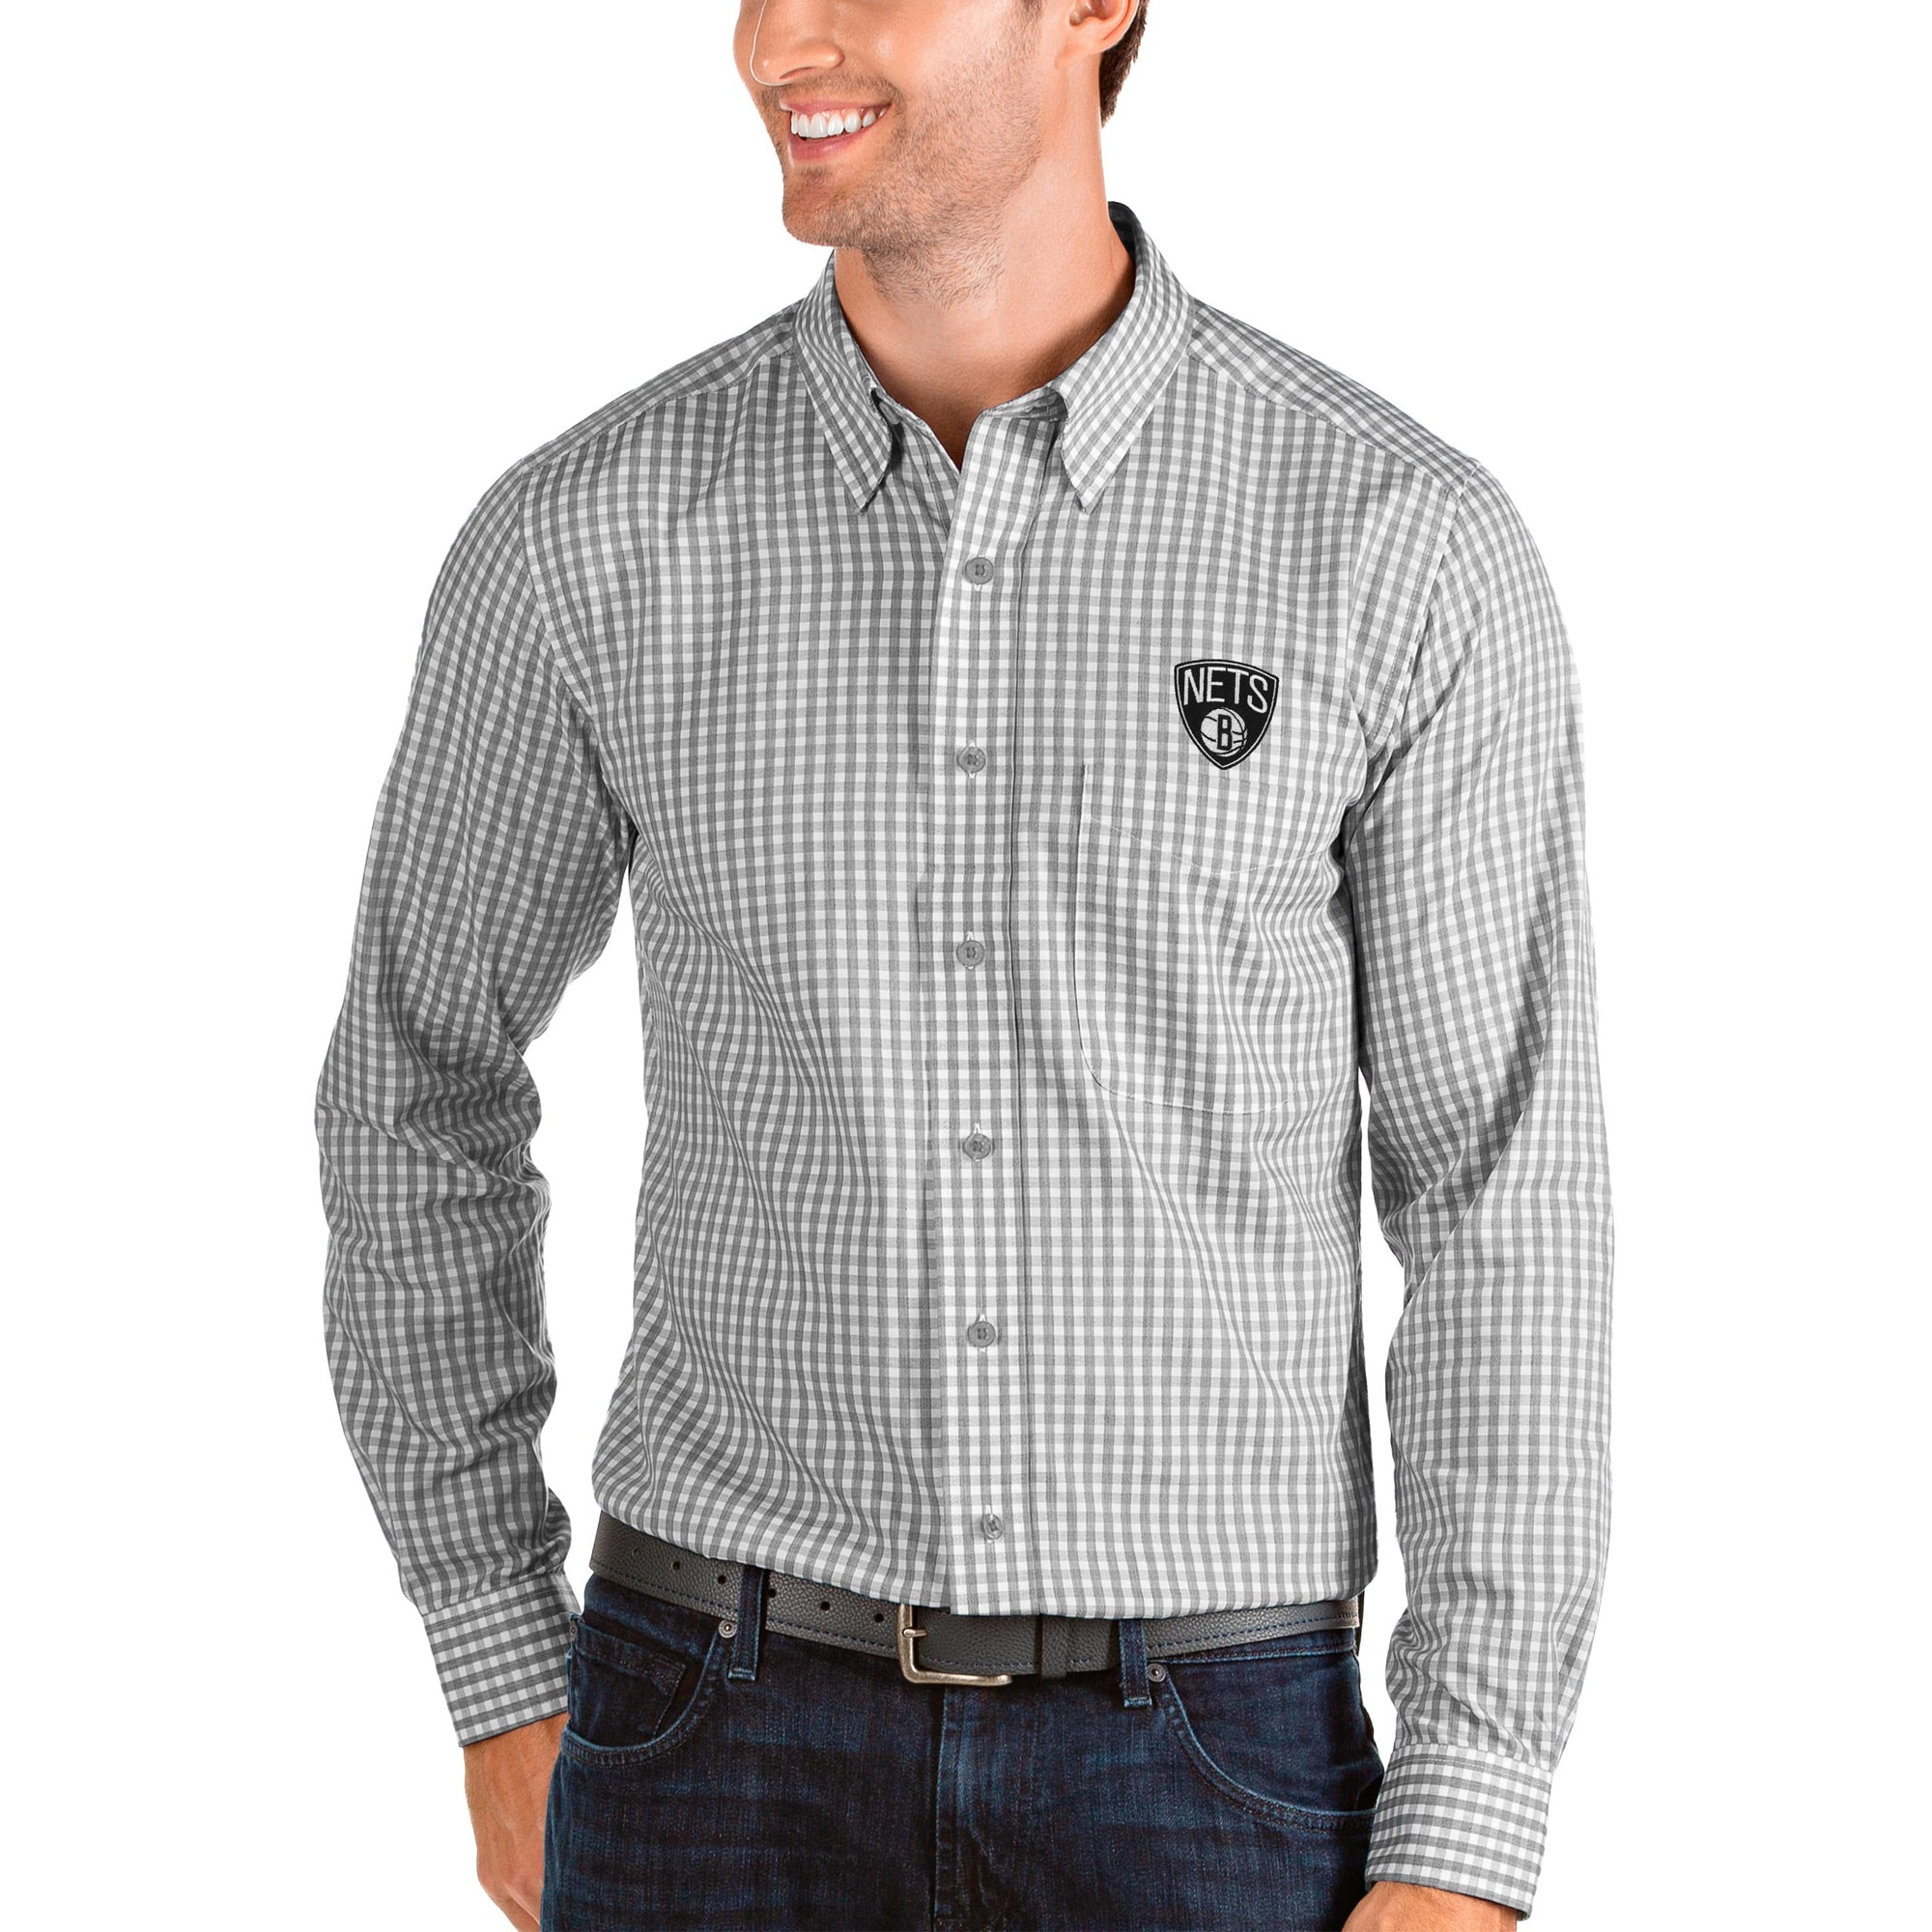 Brooklyn Nets Antigua Structure Long Sleeve Button-Up Shirt - Charcoal/White